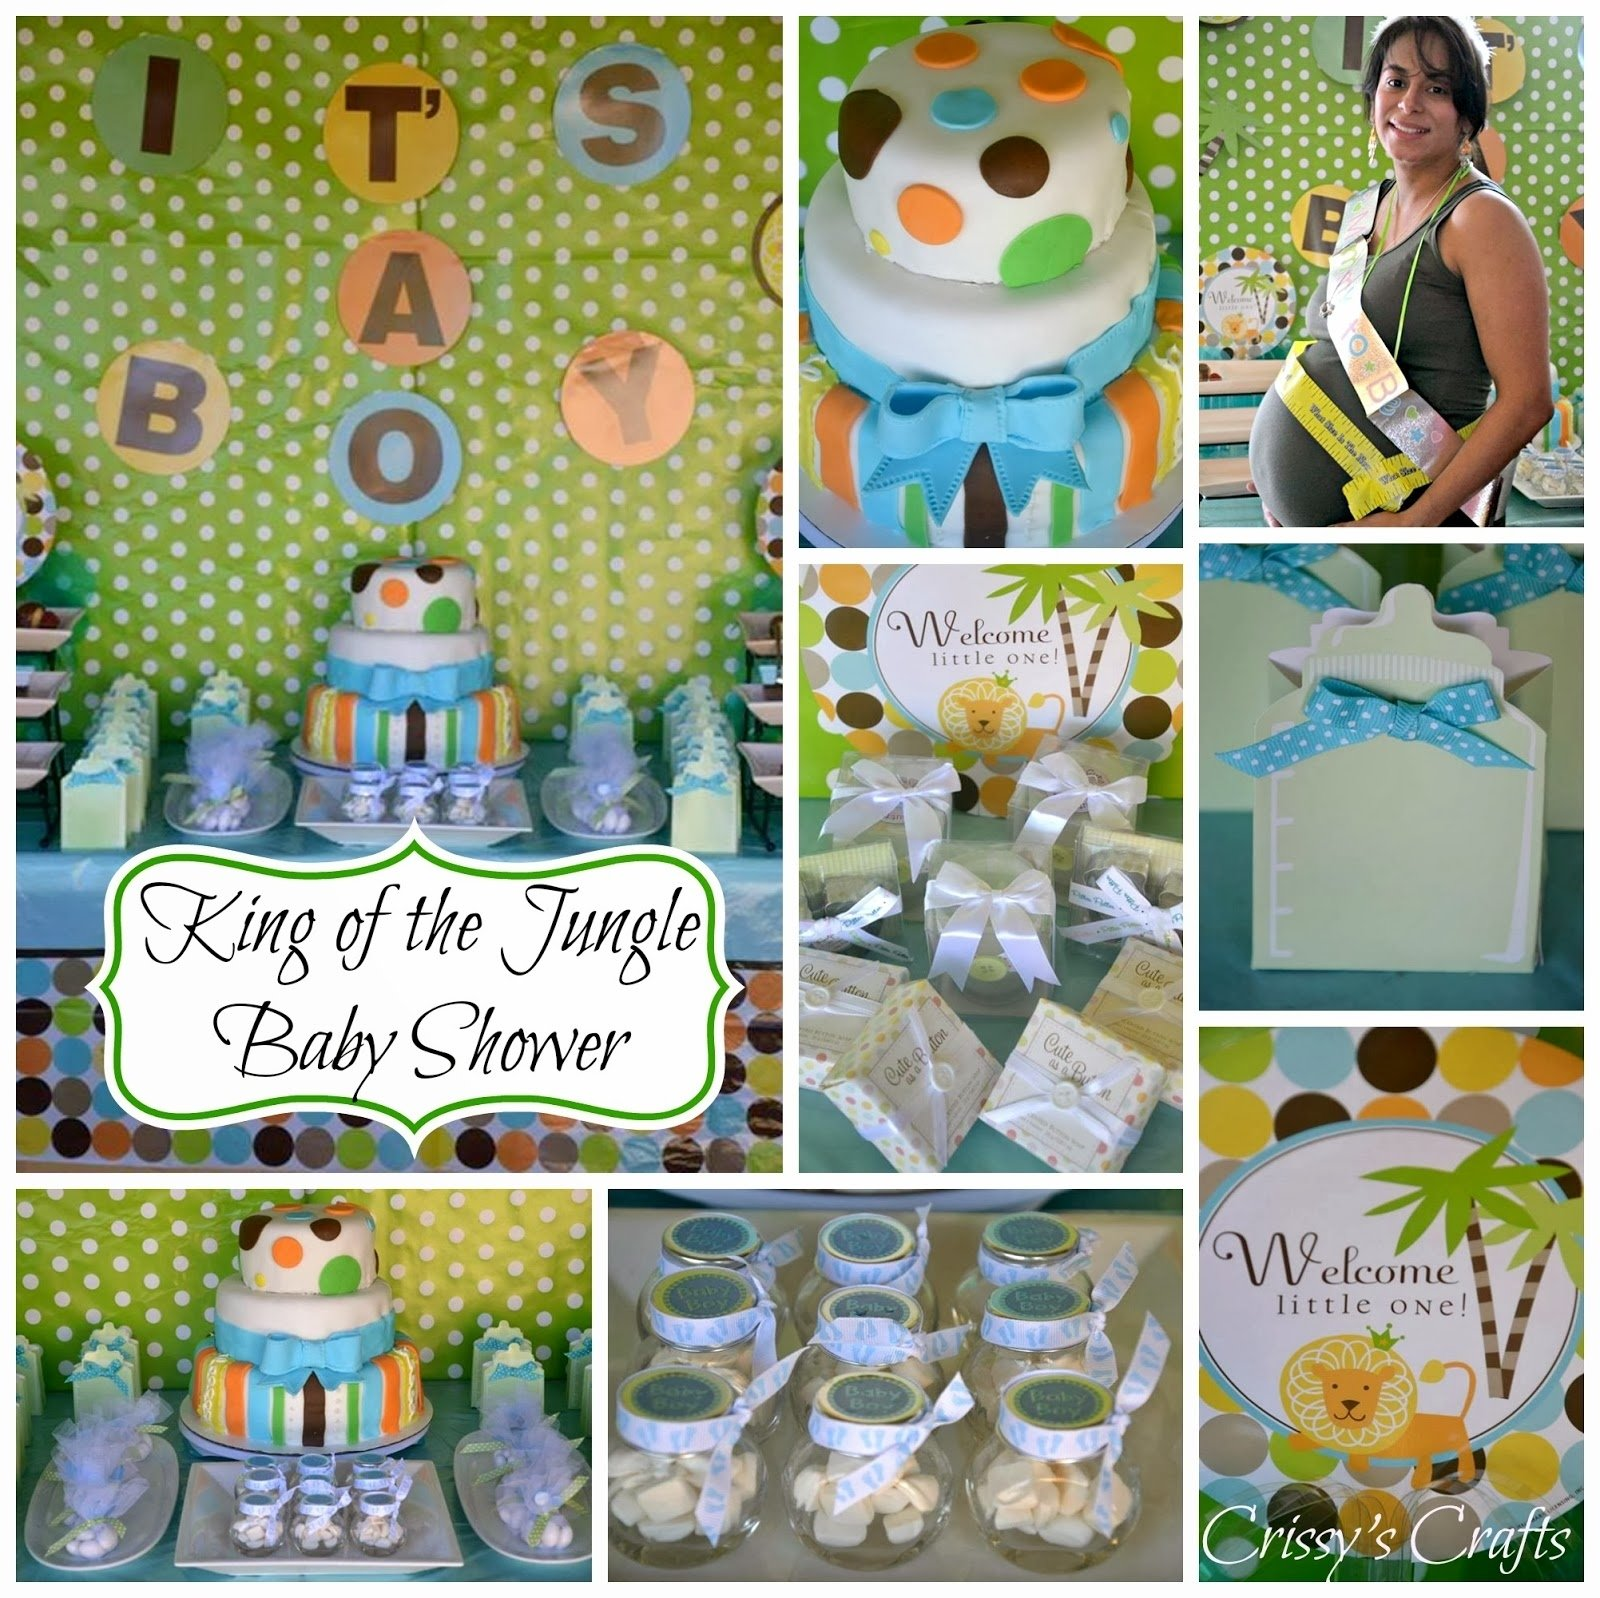 10 Best King Of The Jungle Baby Shower Ideas crissys crafts king of the jungle baby shower 2020